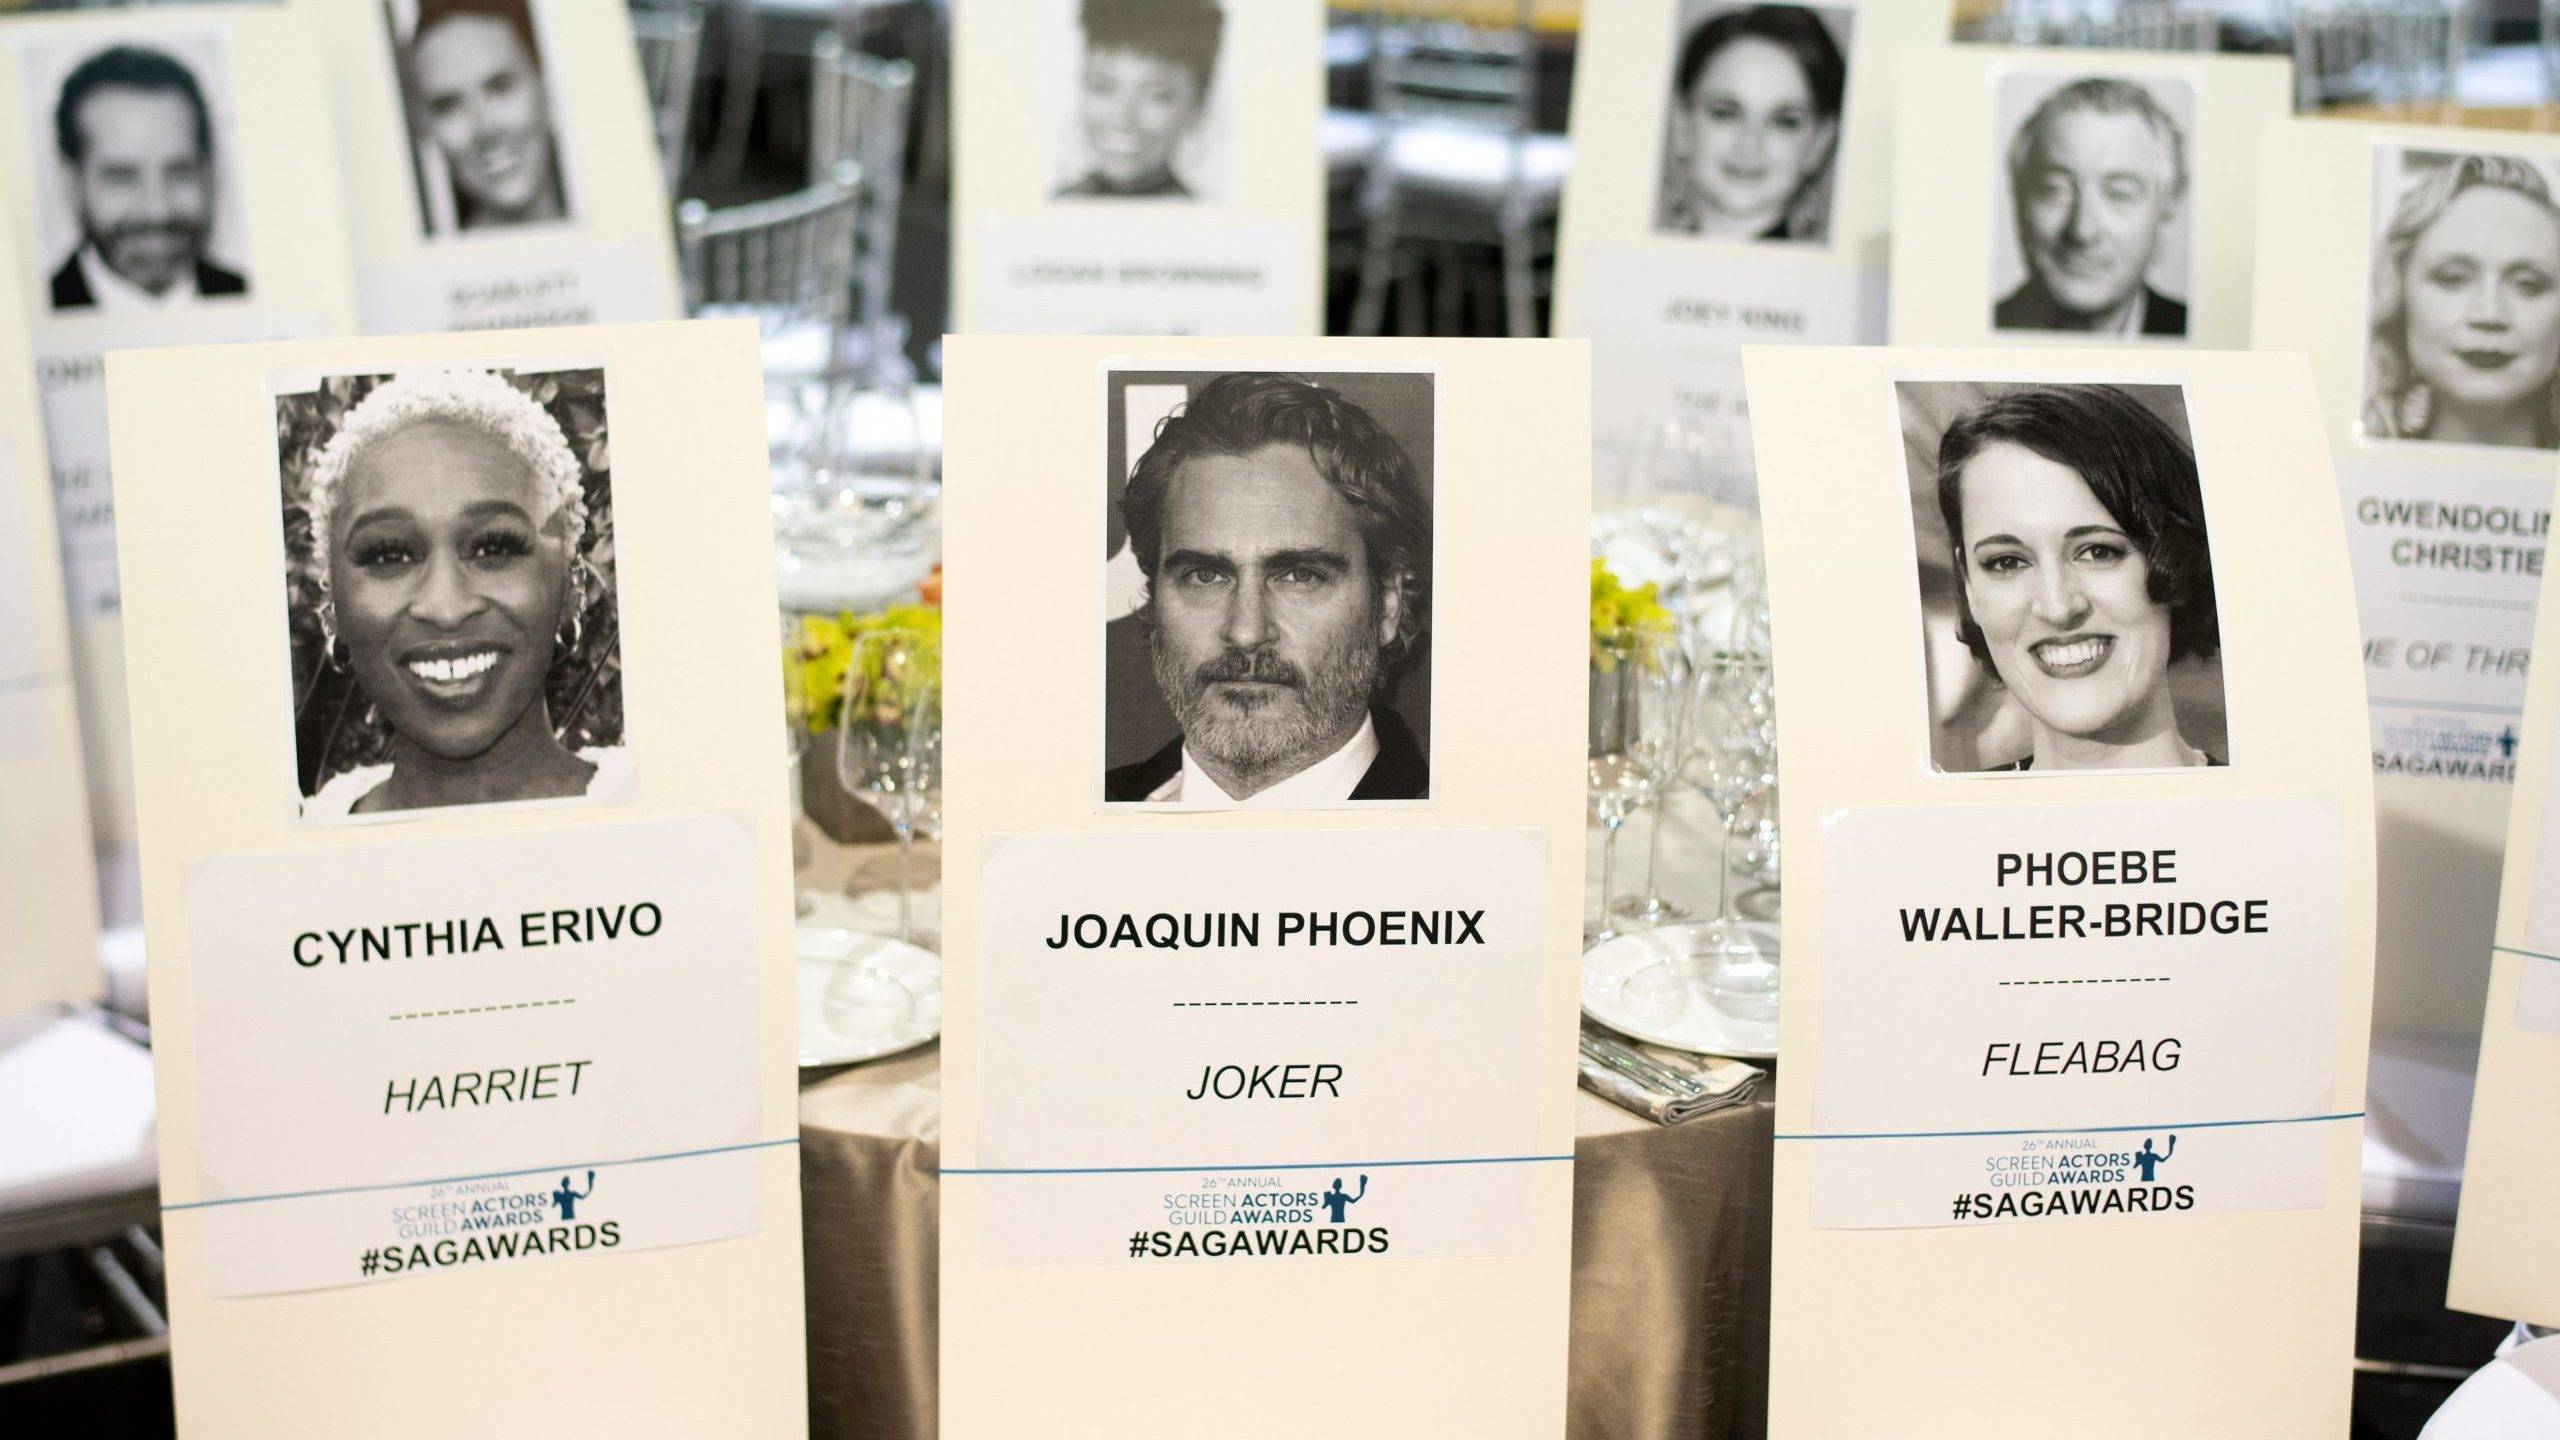 Seating cards are seen at the Silver Carpet Roll Out Event for the 26th Annual Screen Actors Guild Awards at the Shrine Auditorium, in Los Angeles on Jan. 17, 2020. (Credit: VALERIE MACON/AFP via Getty Images)